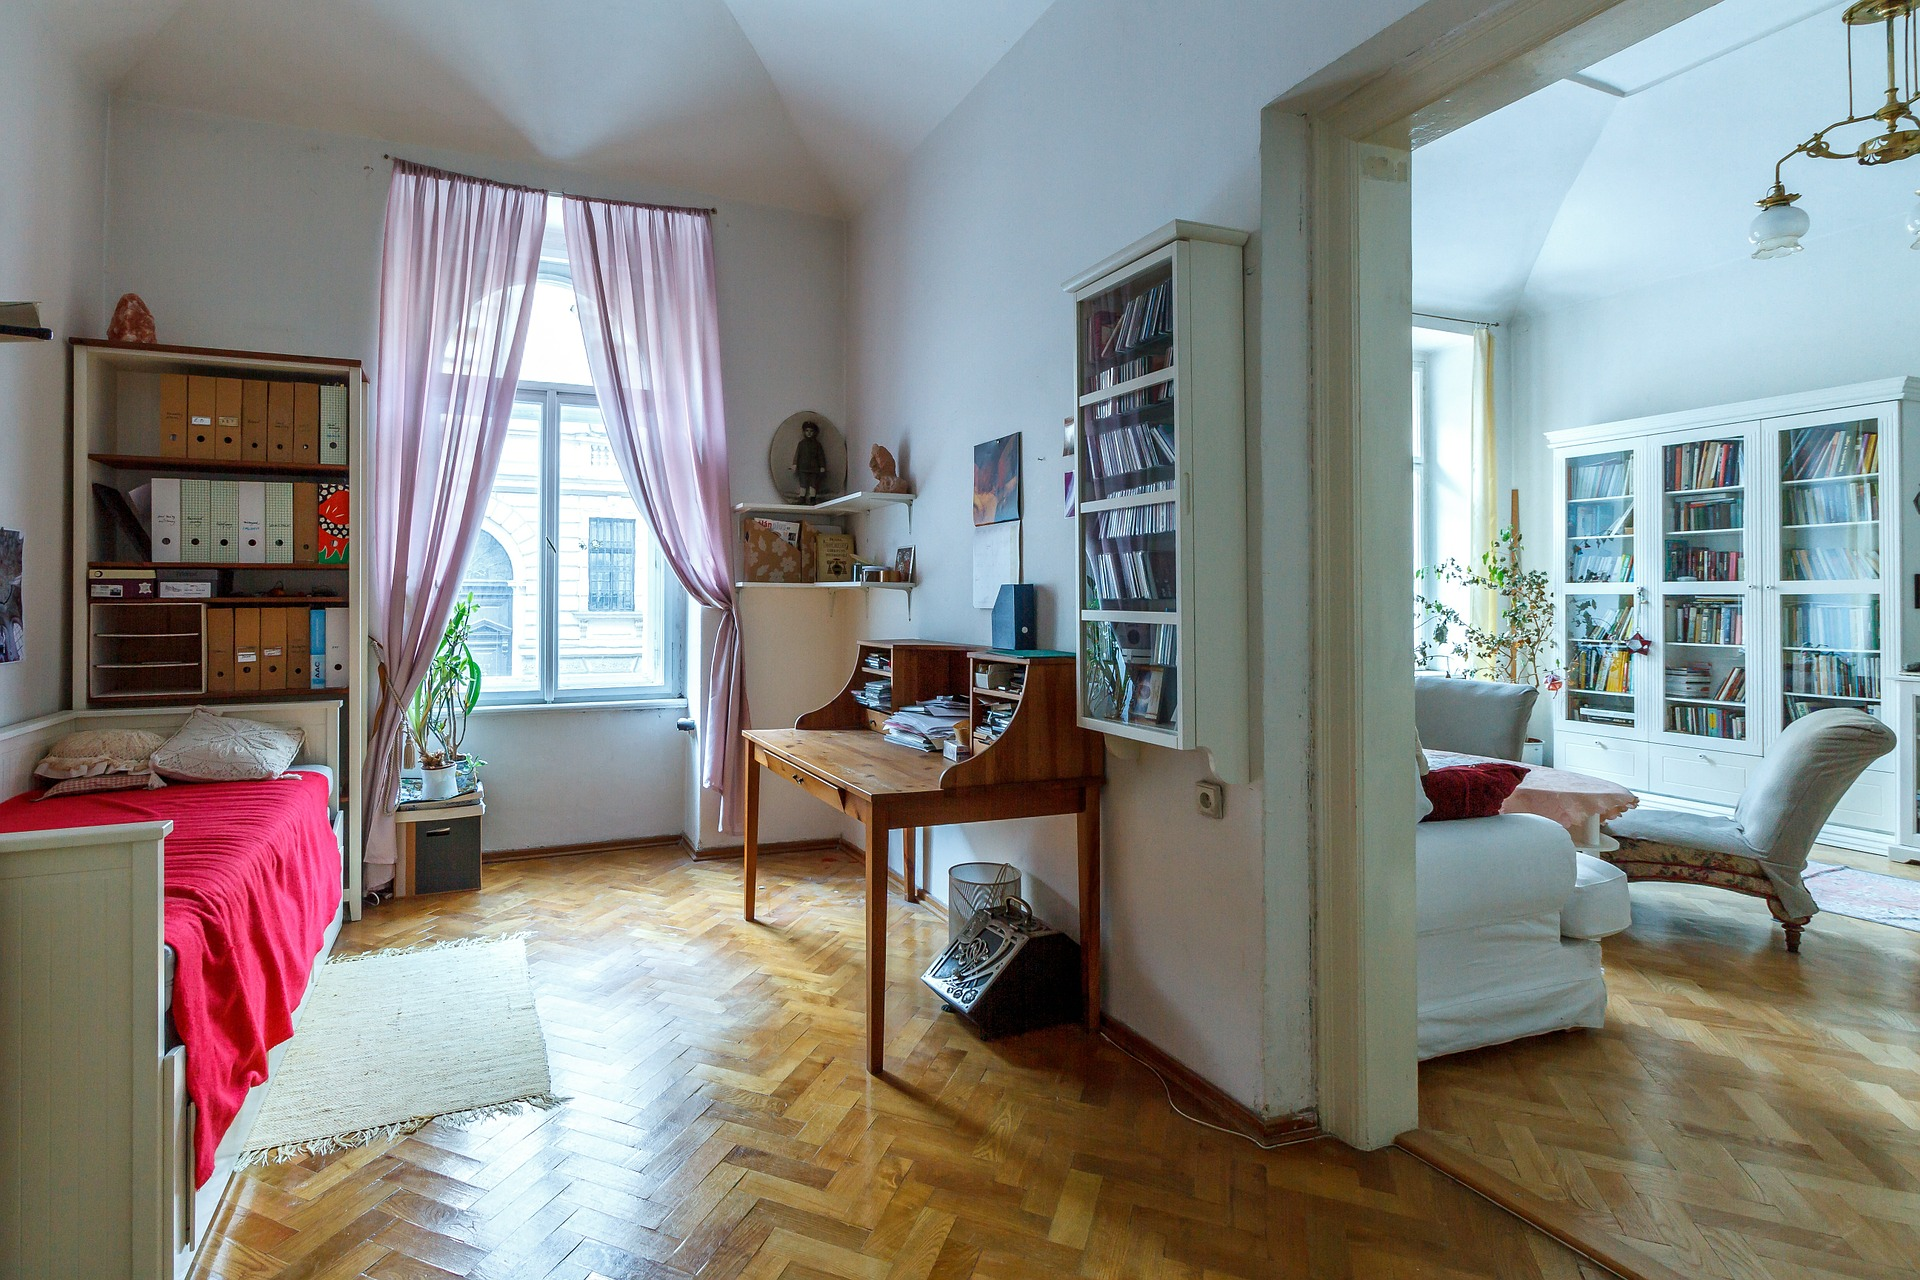 What is a One Bedroom/1.5 Room apartment?